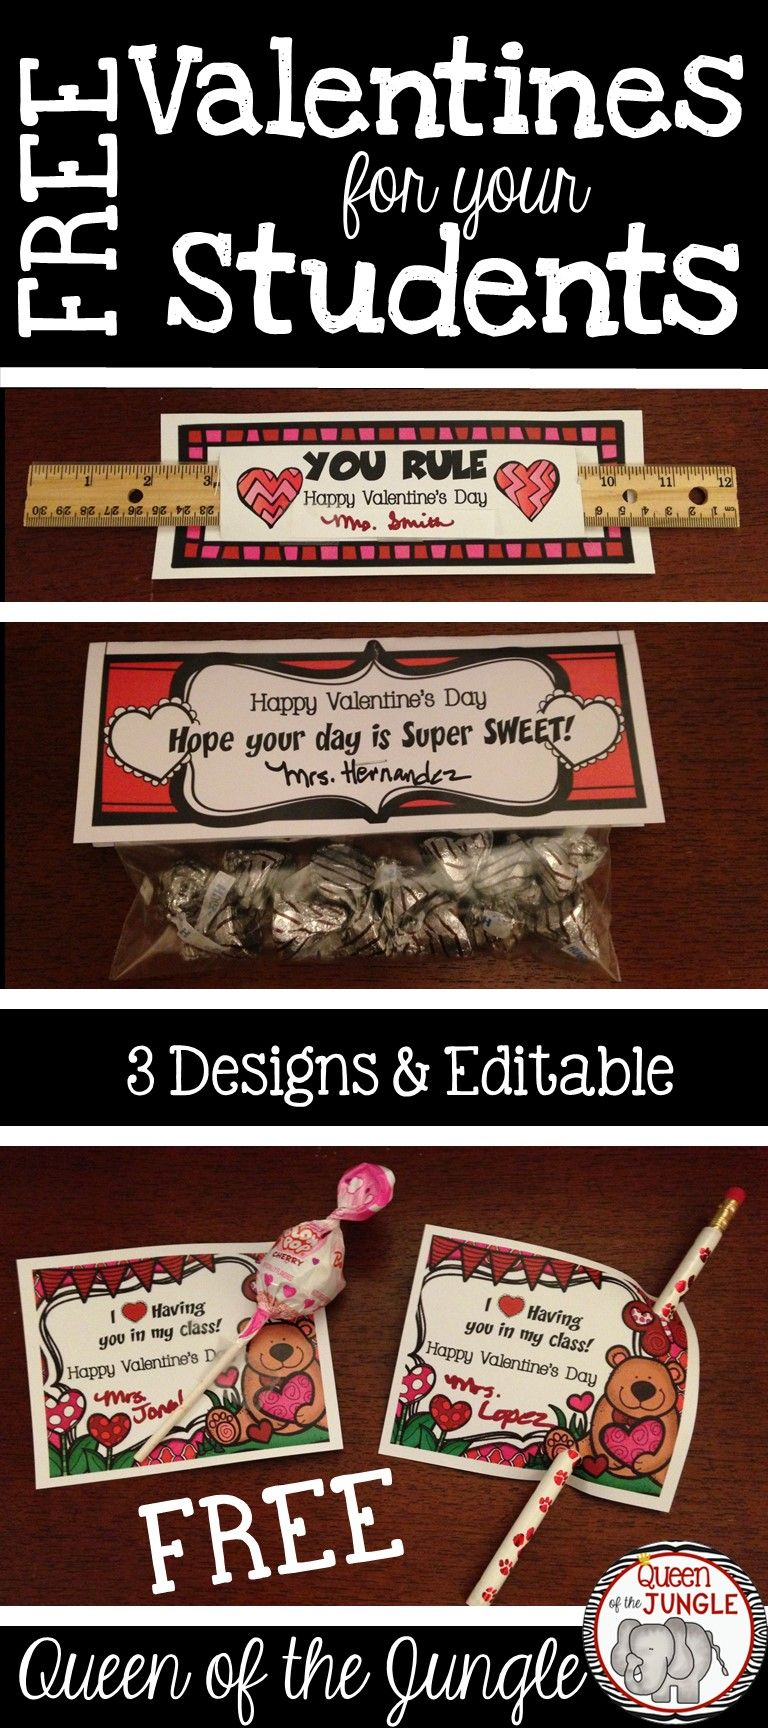 Students Will Love These! Valentines For Teachers To Give To Their Students.